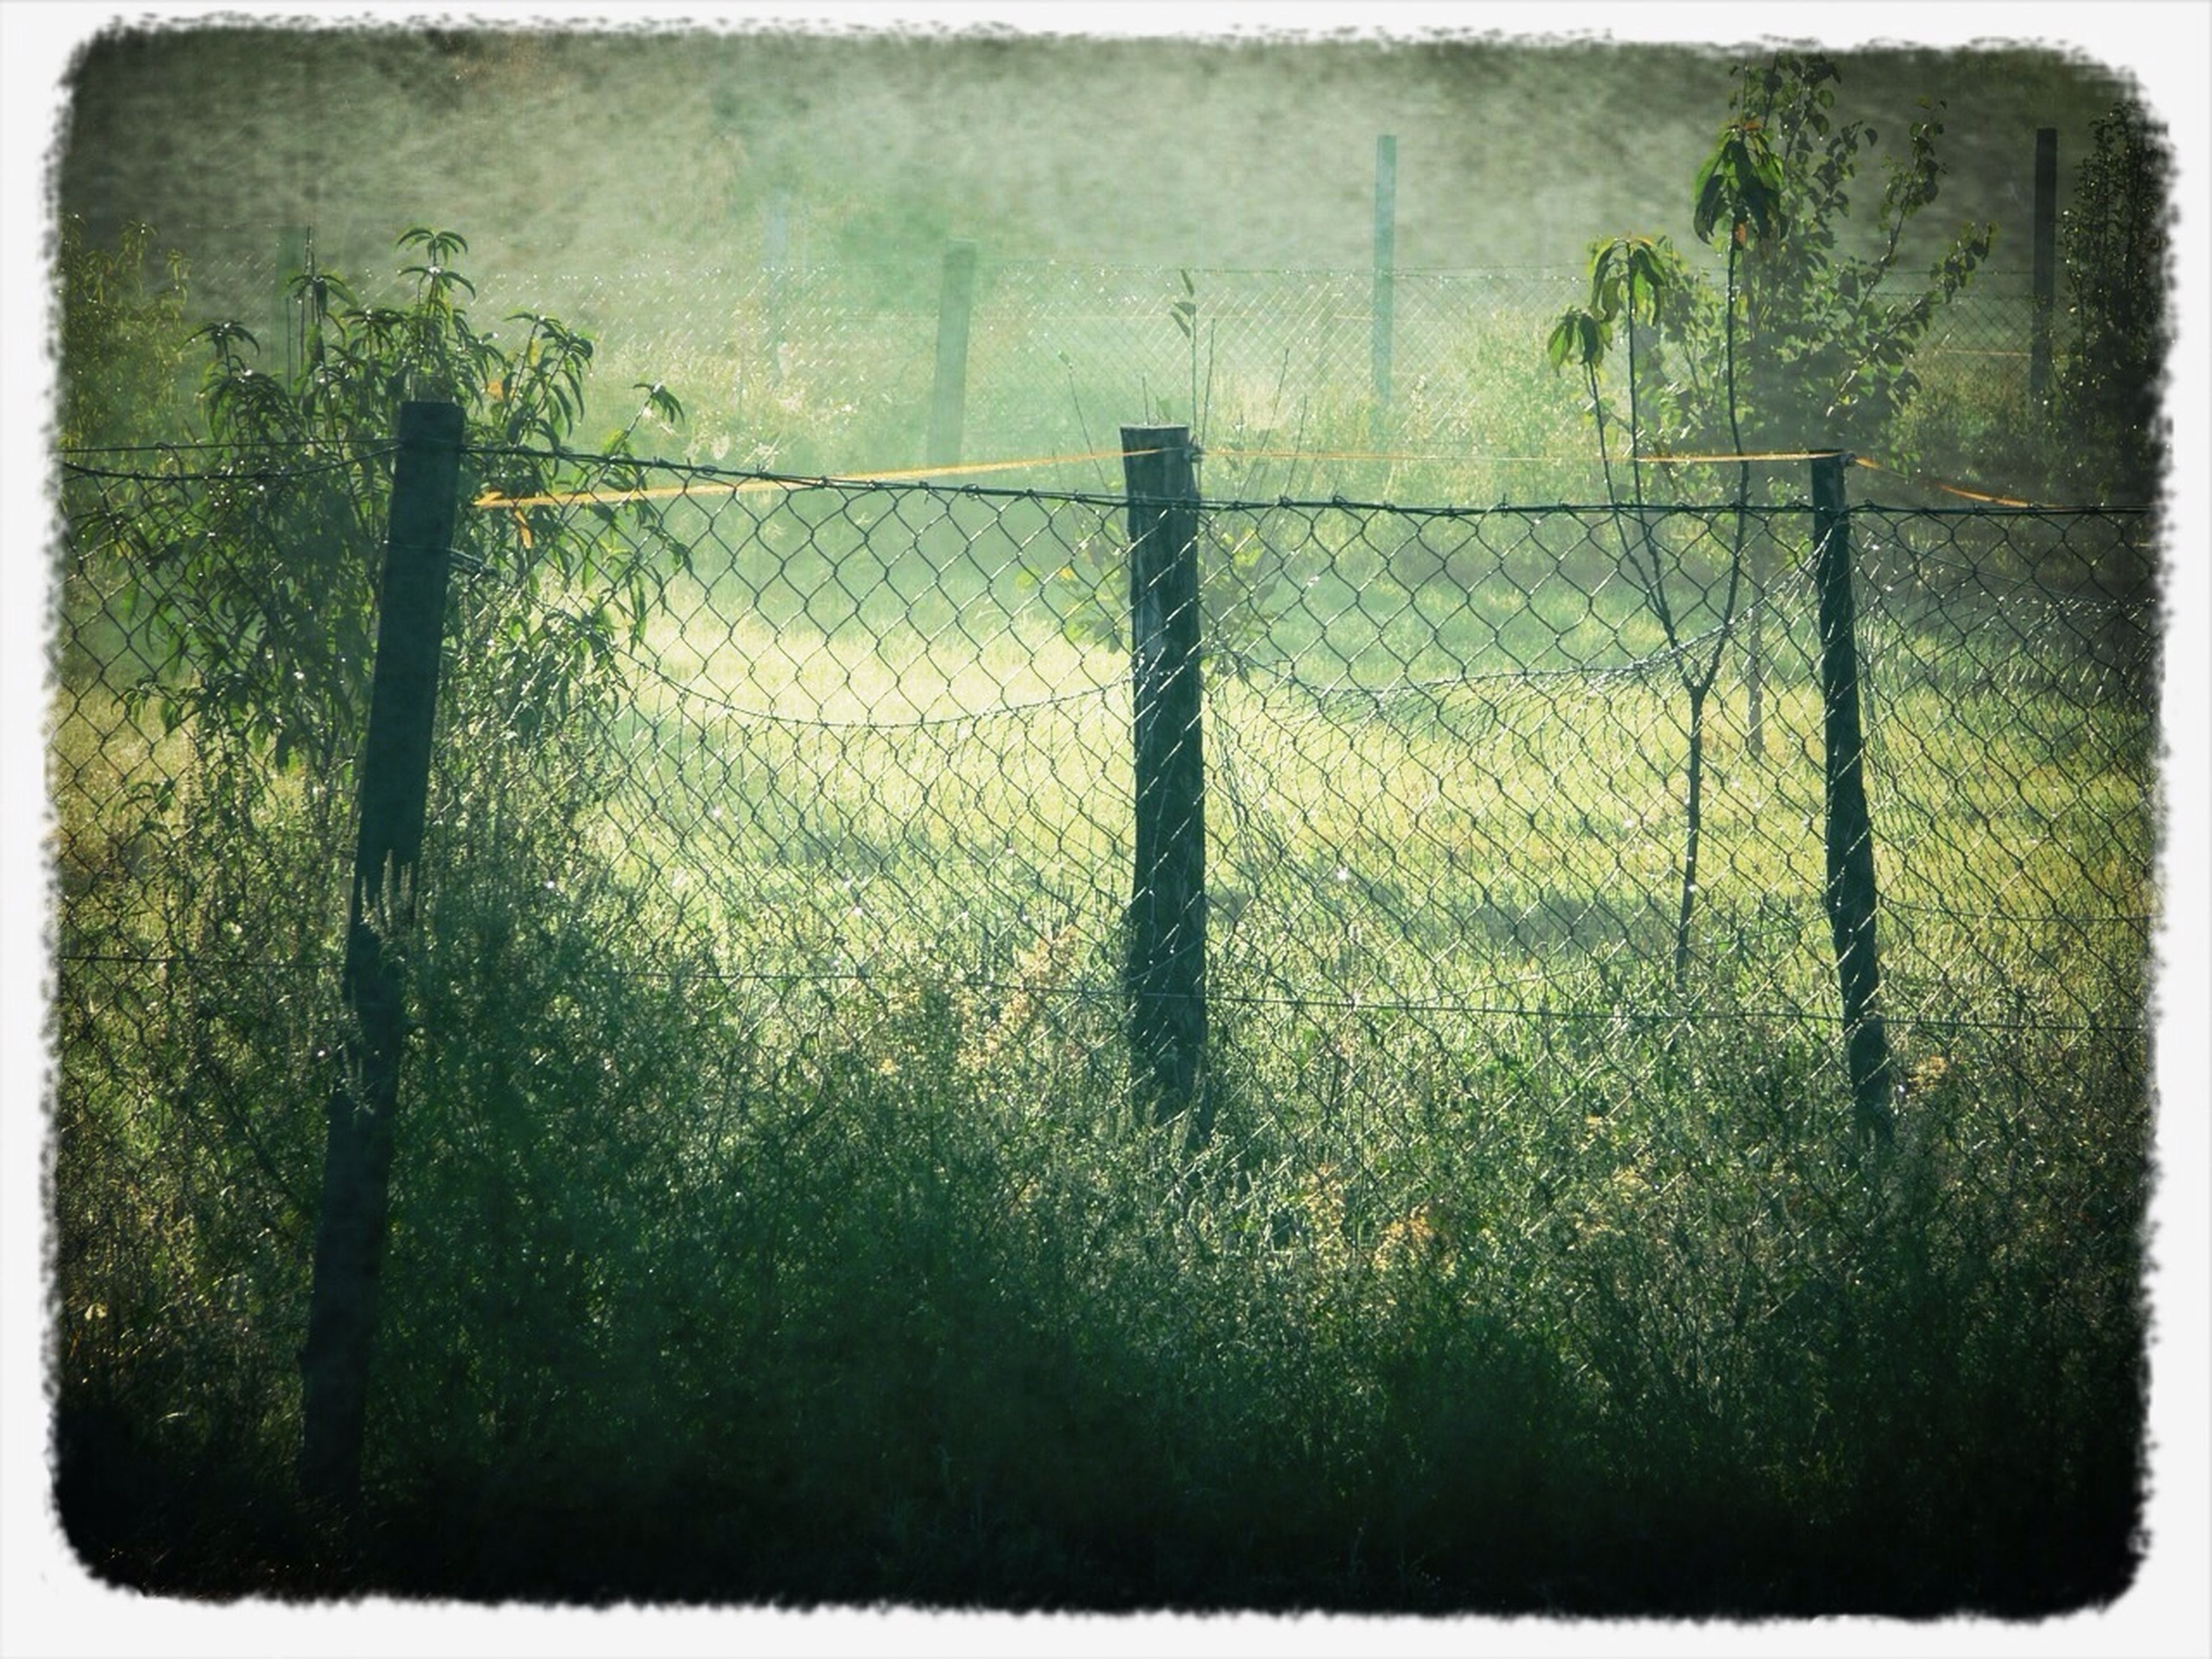 transfer print, auto post production filter, fence, growth, grass, plant, field, protection, safety, security, green color, nature, day, outdoors, chainlink fence, no people, tranquility, grassy, closed, metal